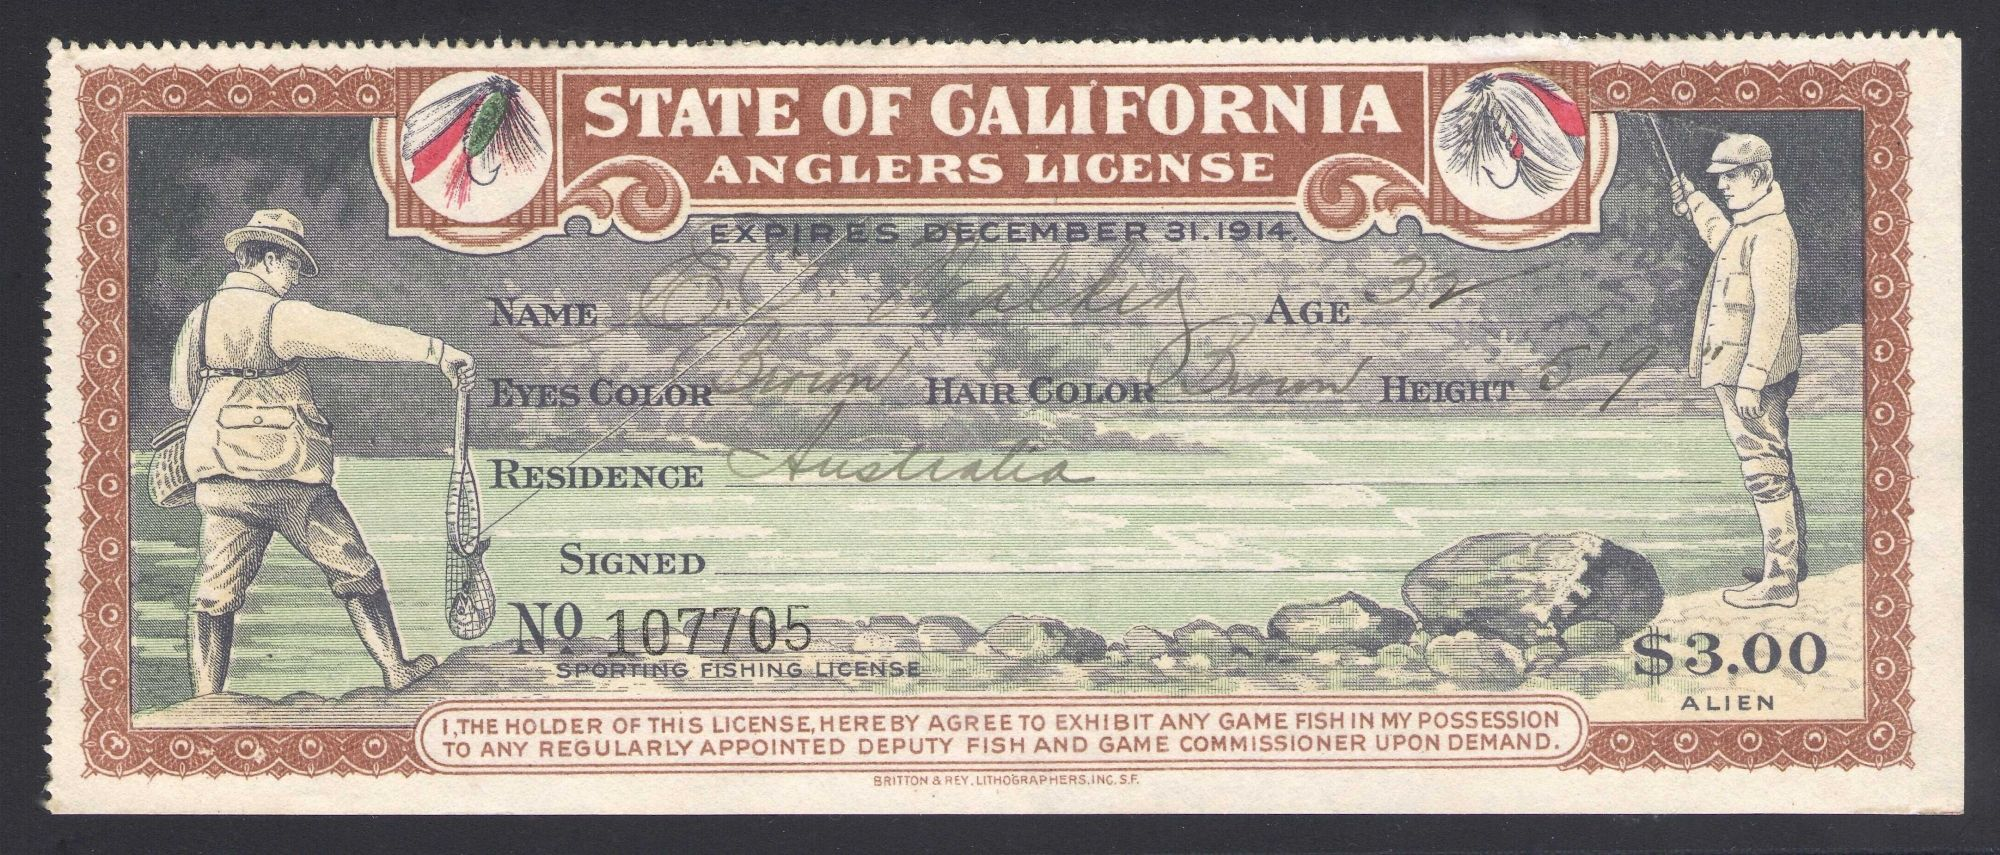 Pin by Waterfowl Stamps and More on California Alien